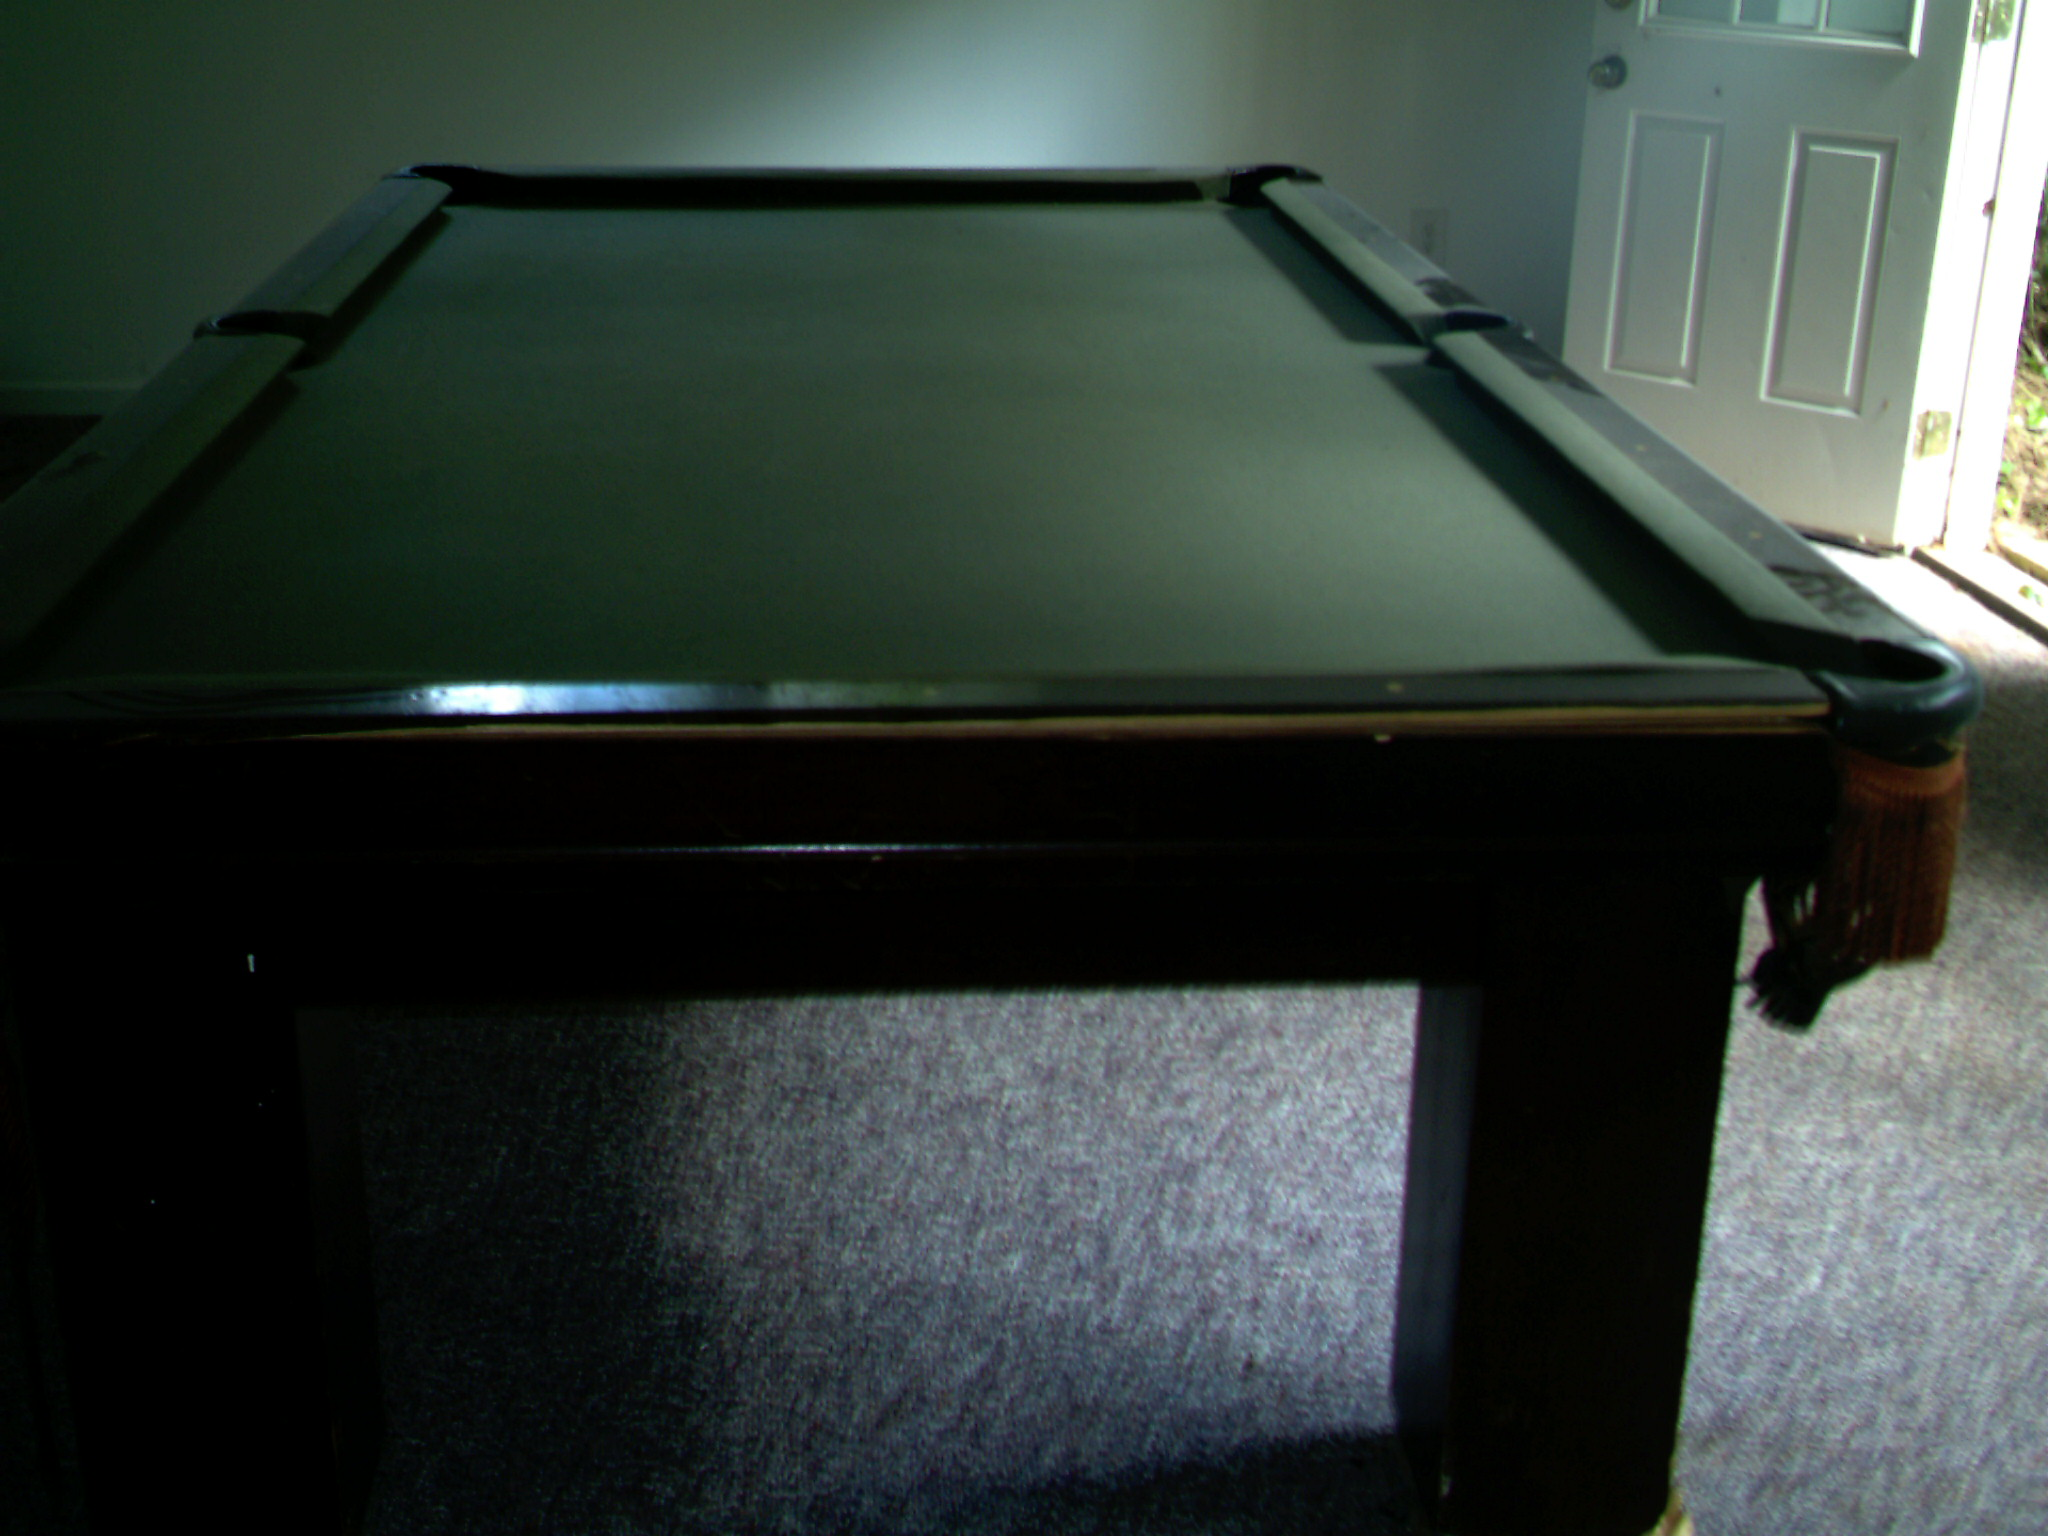 Gandy - Gandy pool table